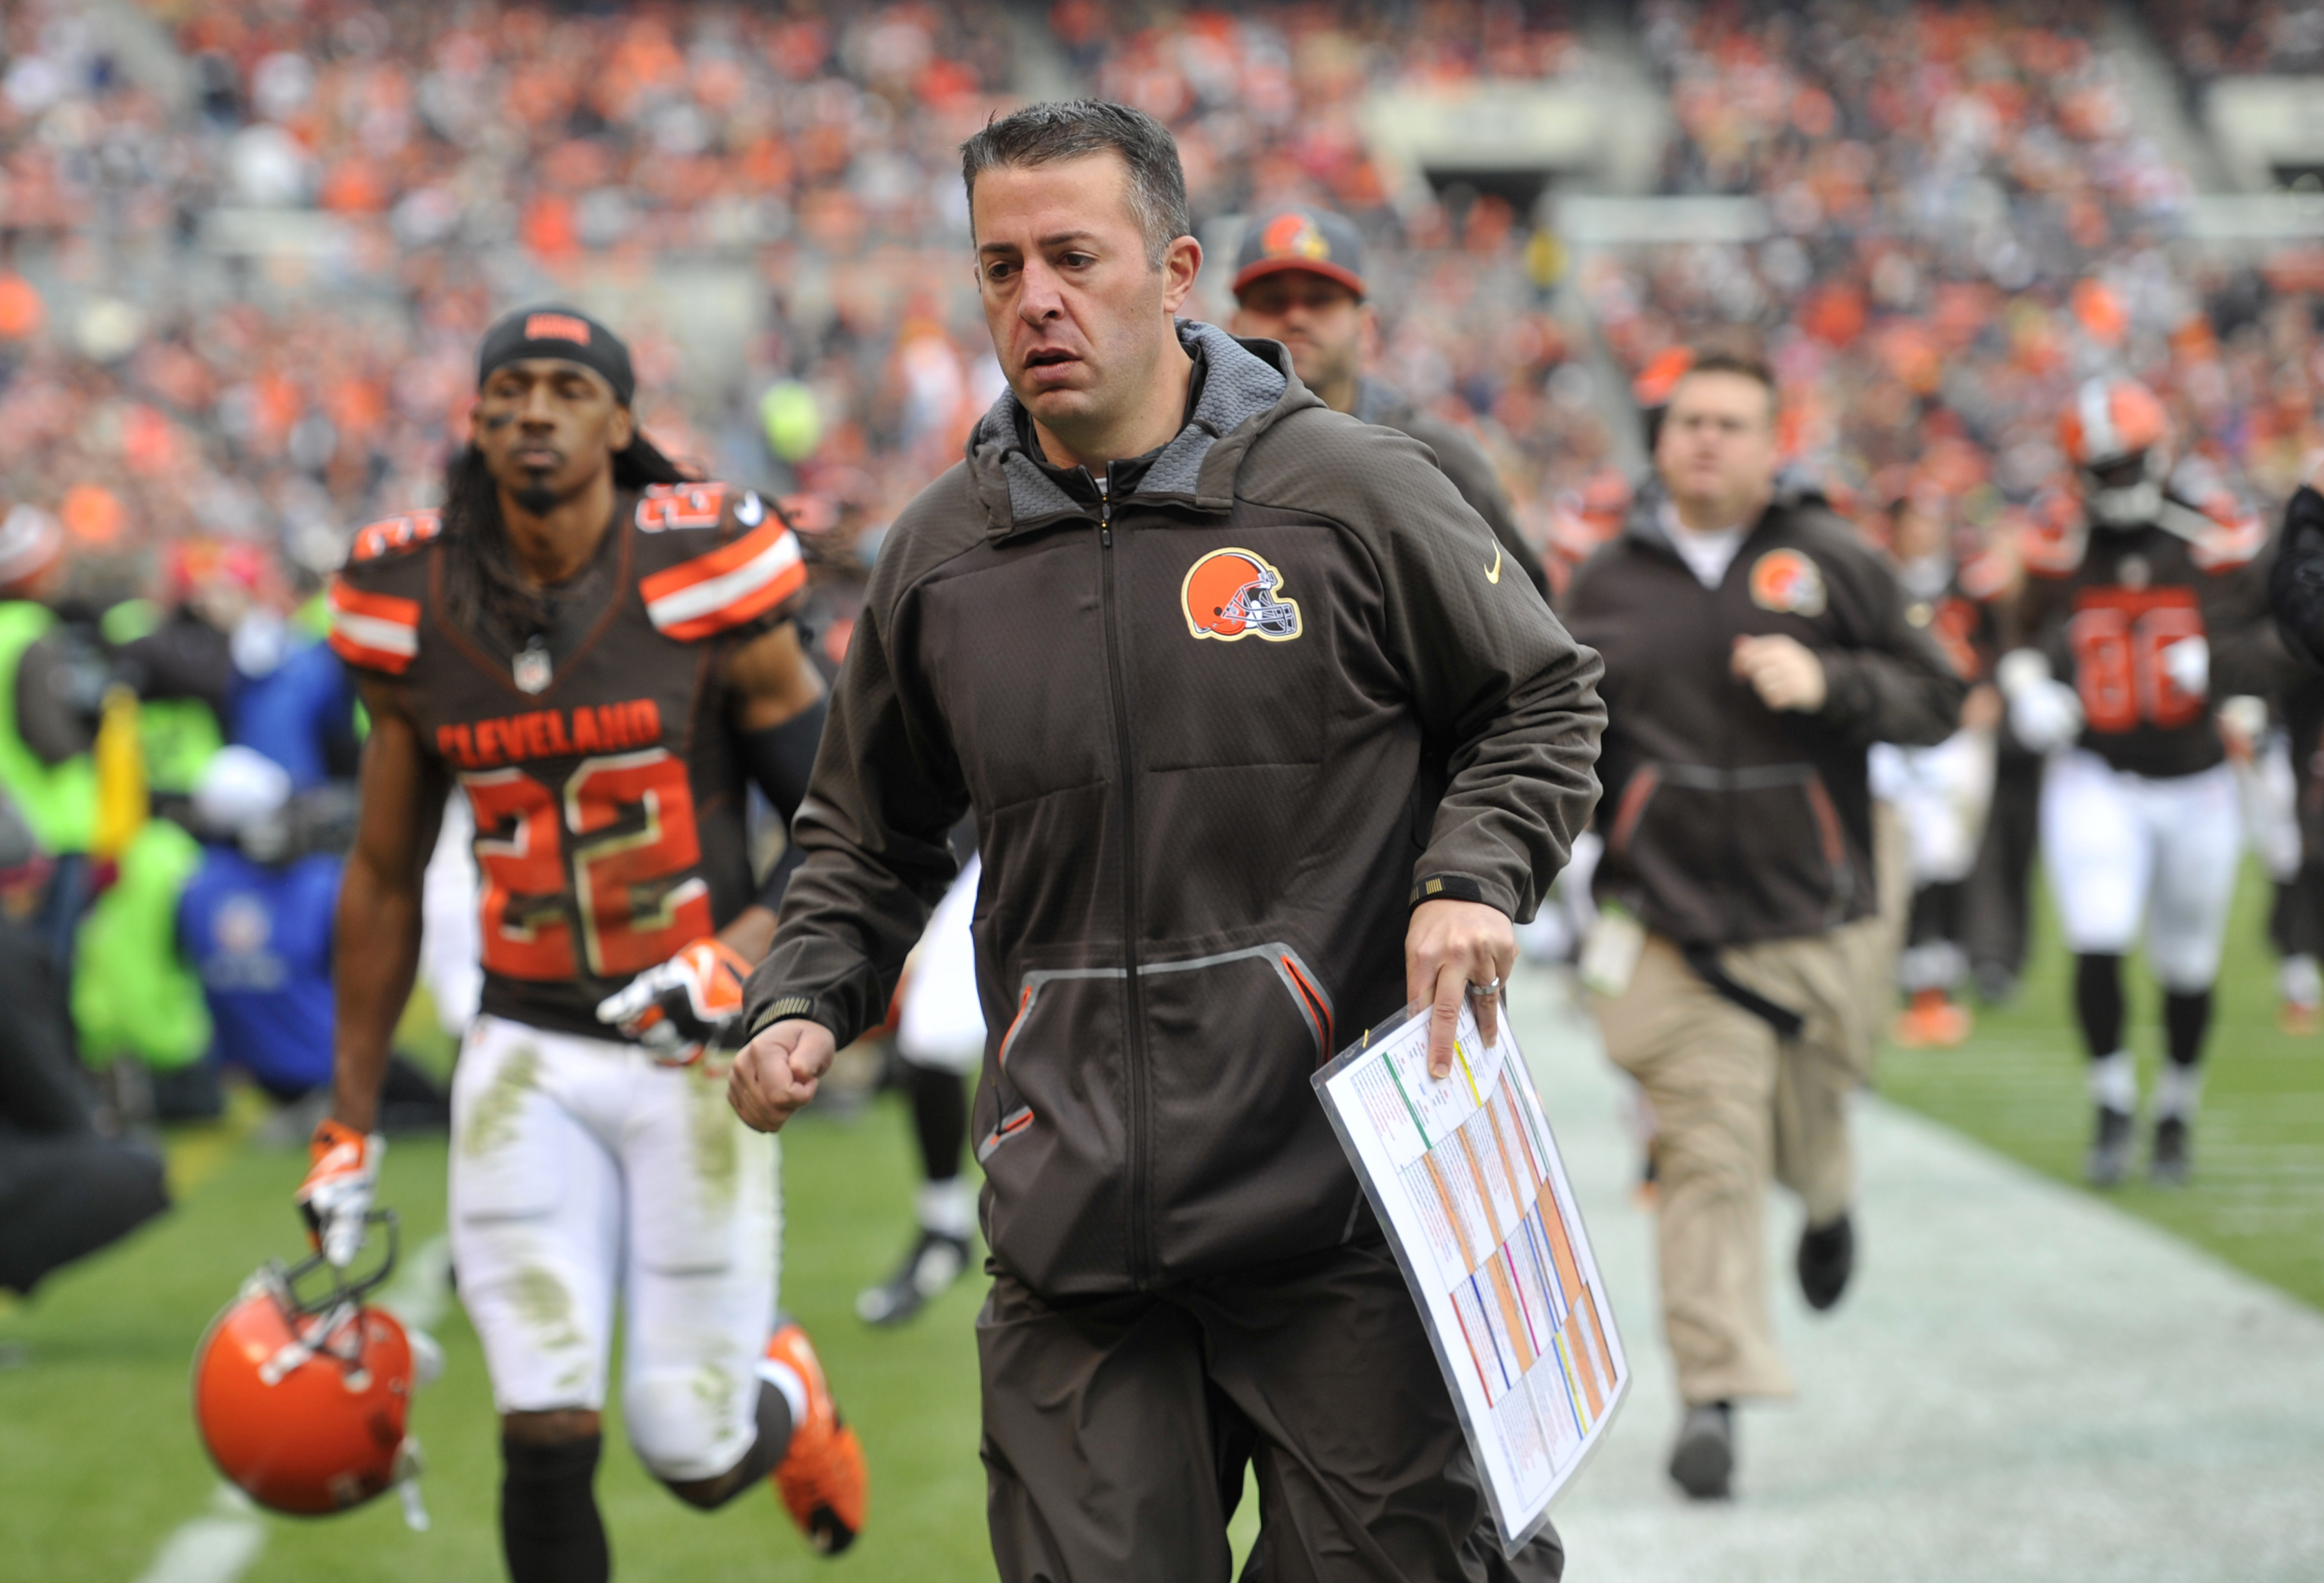 FILE - In this Dec. 6, 2015, file photo, Cleveland Browns offensive coordinator John DeFilippo runs off the field at halftime during the team's NFL football game against the Cincinnati Bengals in Cleveland. A person familiar with the decision says DeFilip